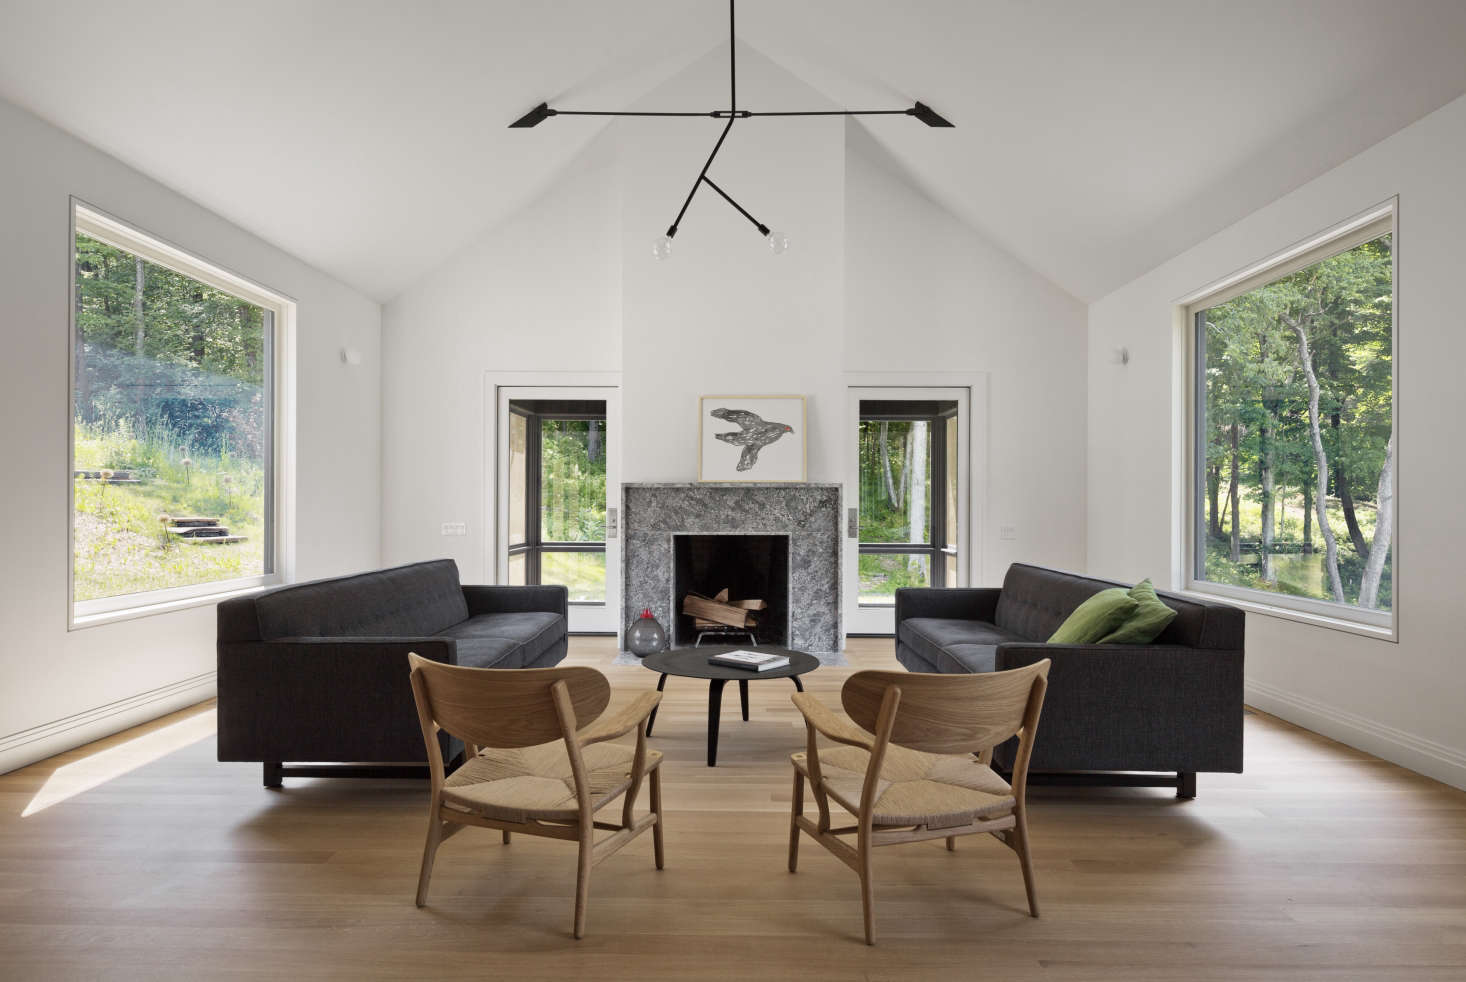 Peaked-ceiling living room at Undermountain, a barn-style house in the Berkshires by O'Neill Rose Architects